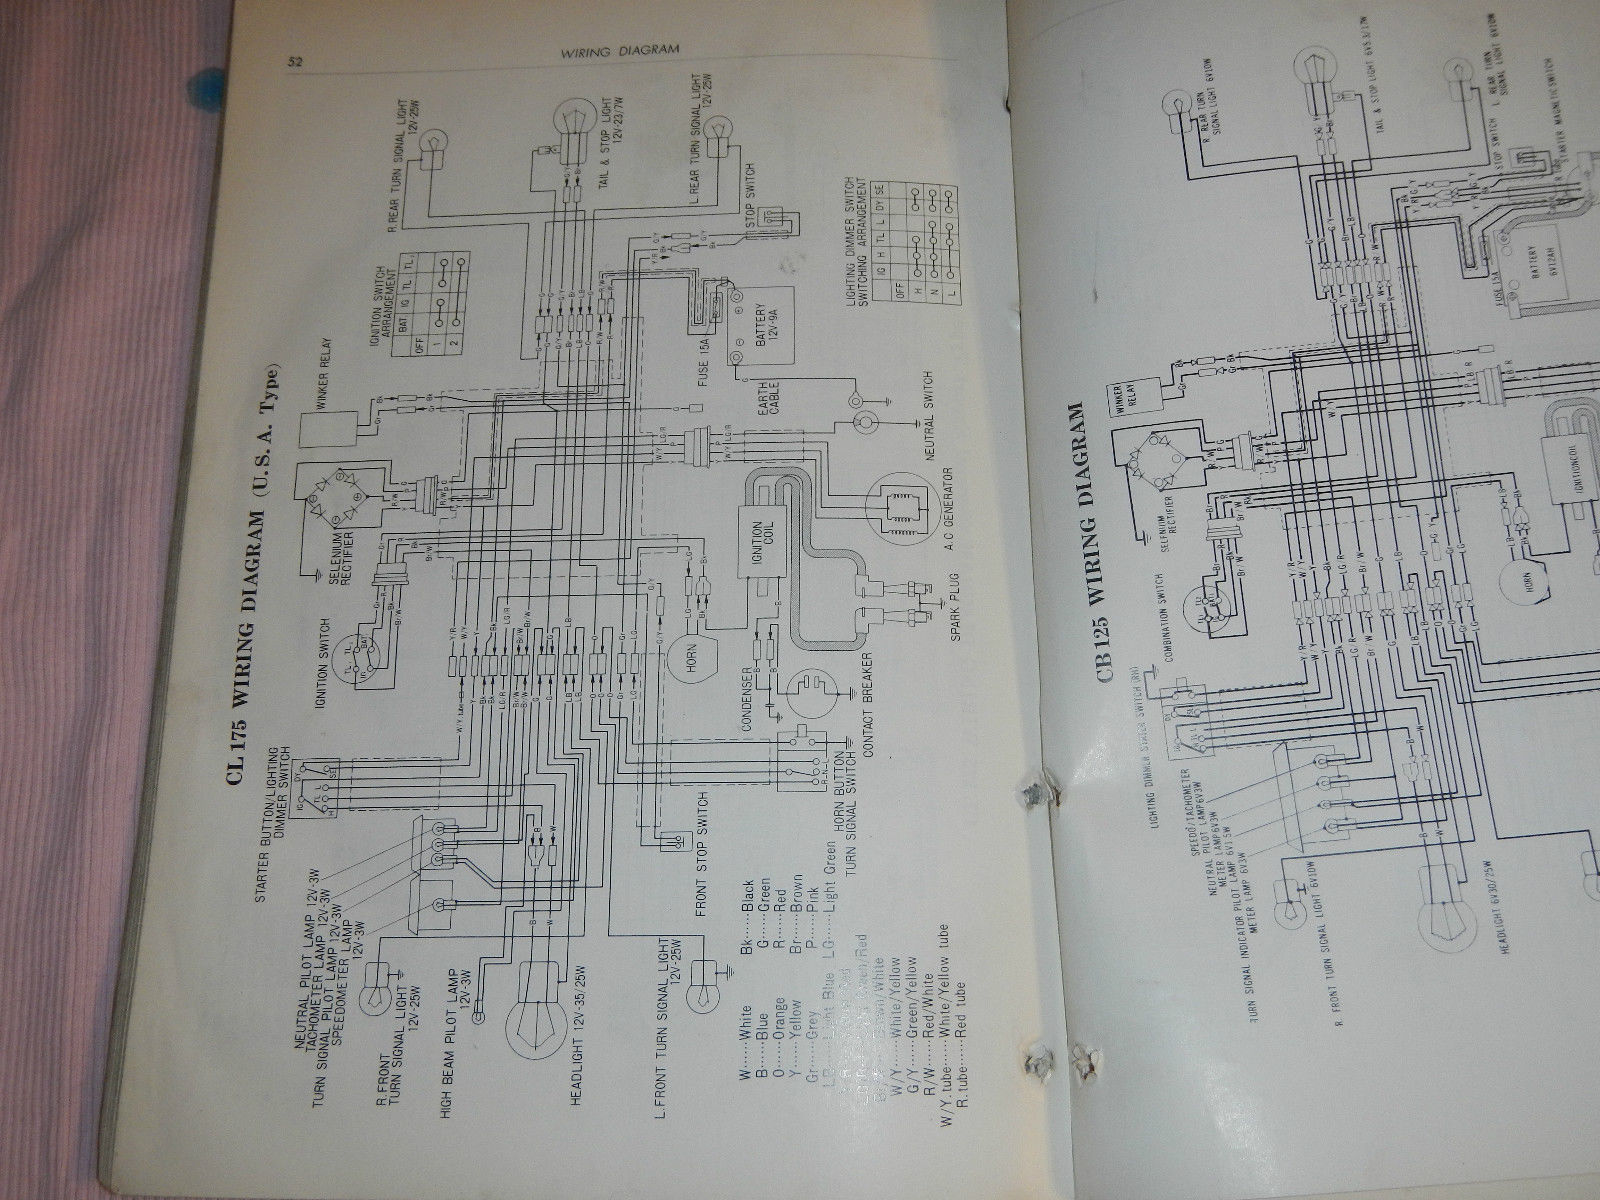 Honda Cl 175 Wiring Diagram Page 4 And Schematics Cb125 1969 69 1970 70 Cl125 K3 Cb175 Similar Items Cl175